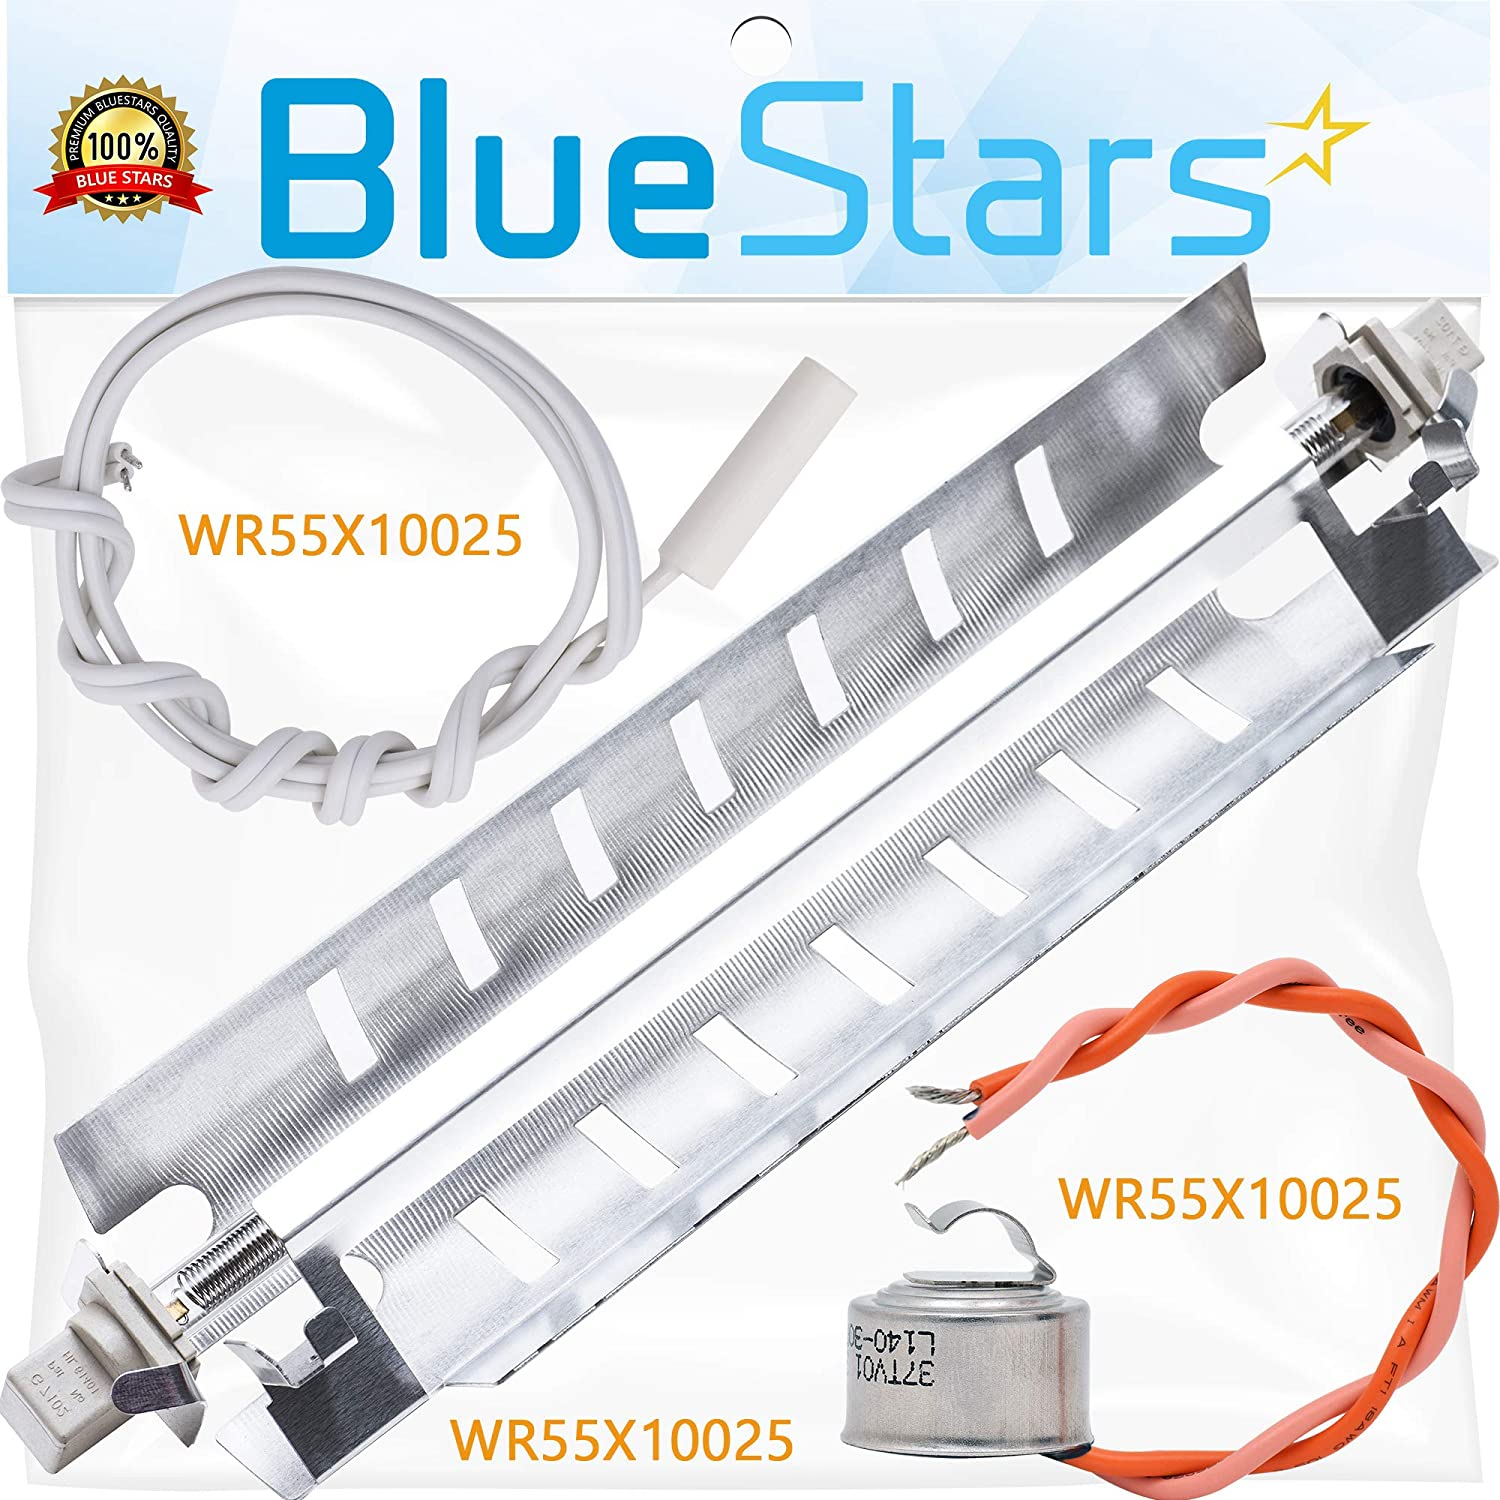 WR51X10055 Refrigerator Defrost Heater, WR55X10025 Temperature Sensor and WR50X10068 Defrost Thermostat Replacement by Blue Stars - Exact Fit for GE Refrigerators